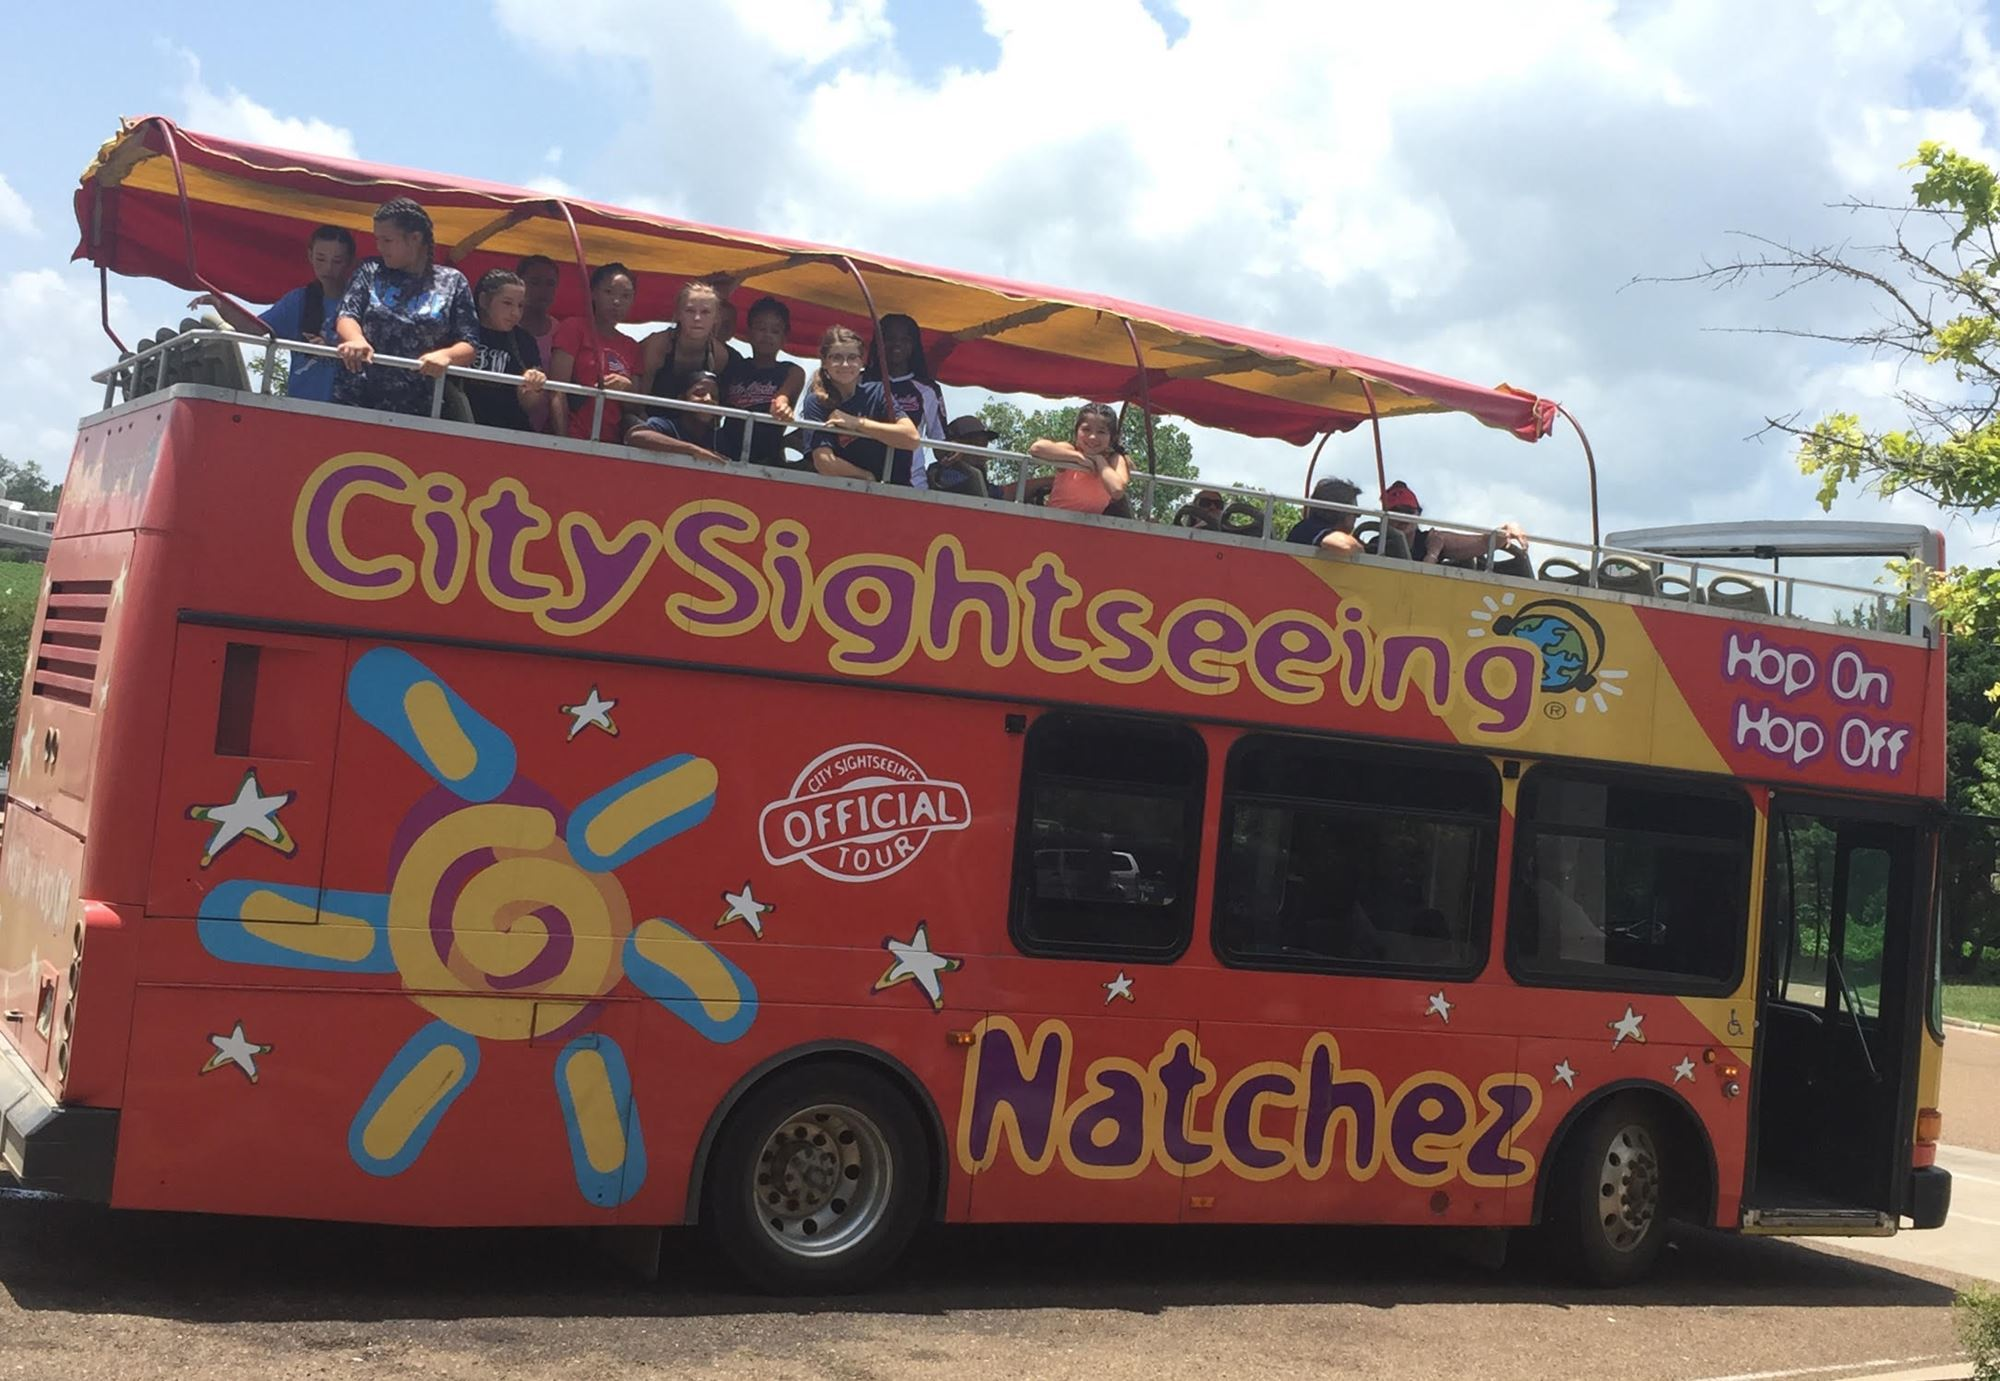 Hop on Hop off Lunch and Historic Tours All Inclusive